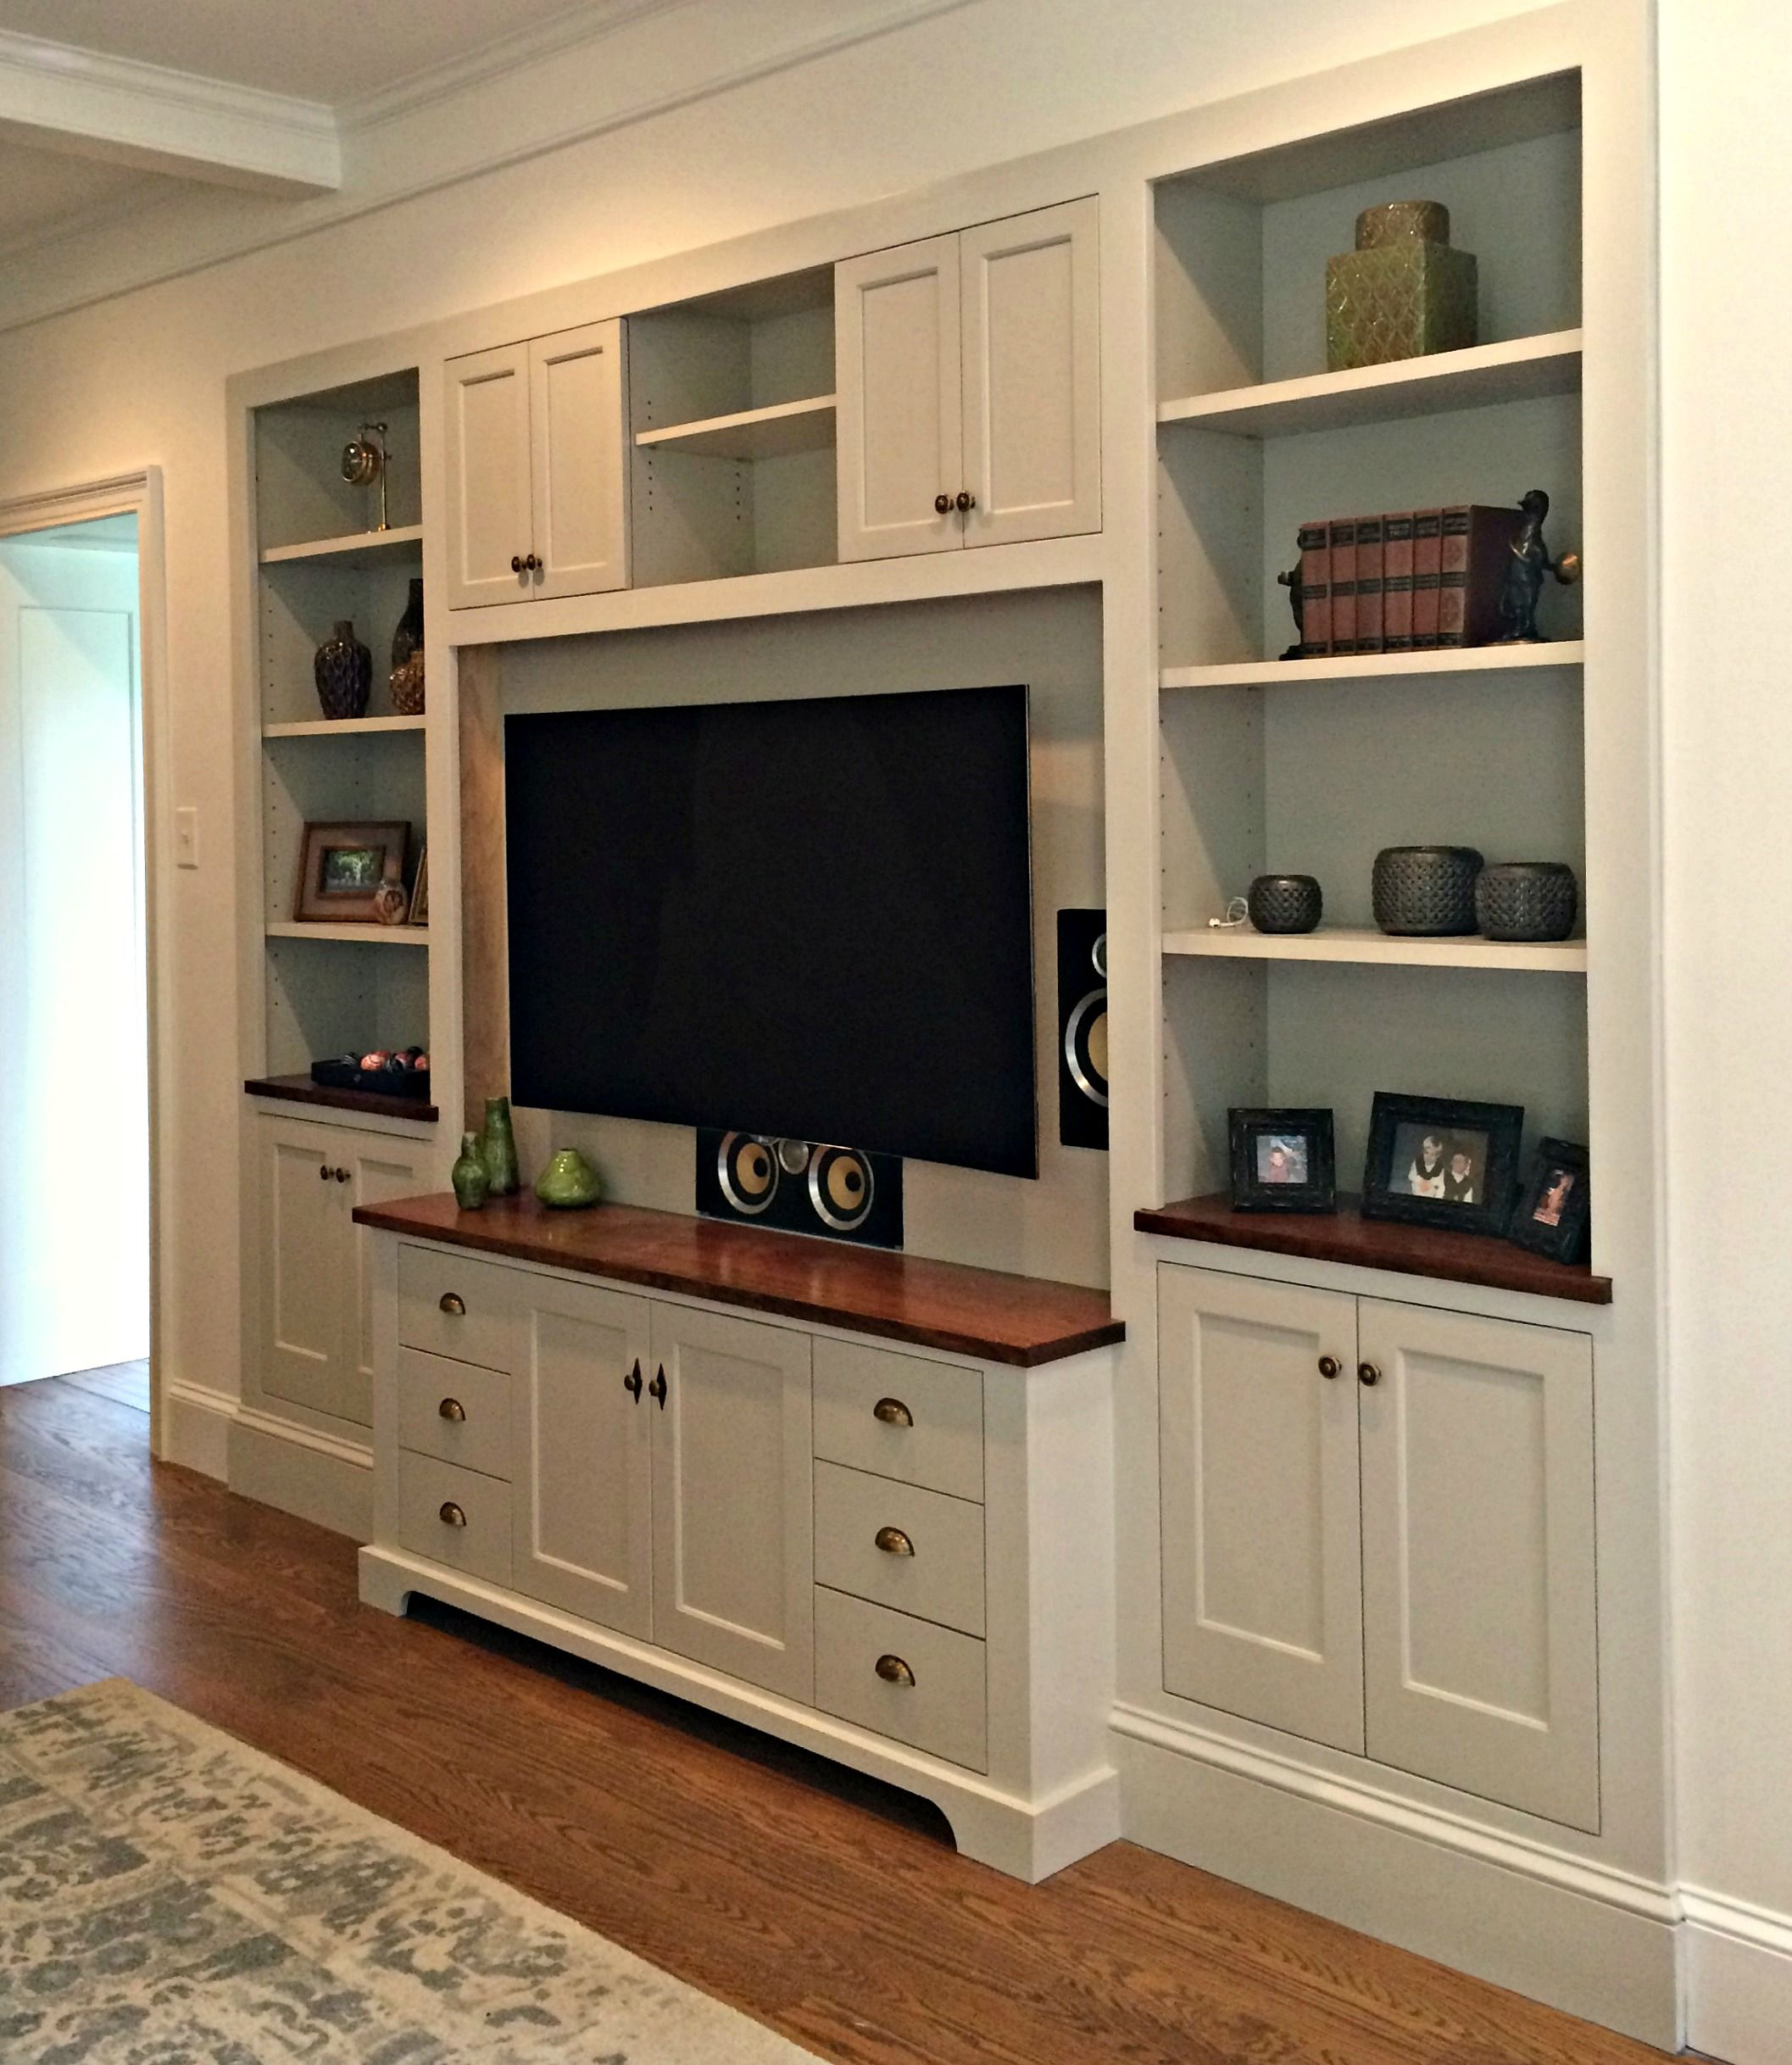 This custom entertainment center was recessed into the wall creating